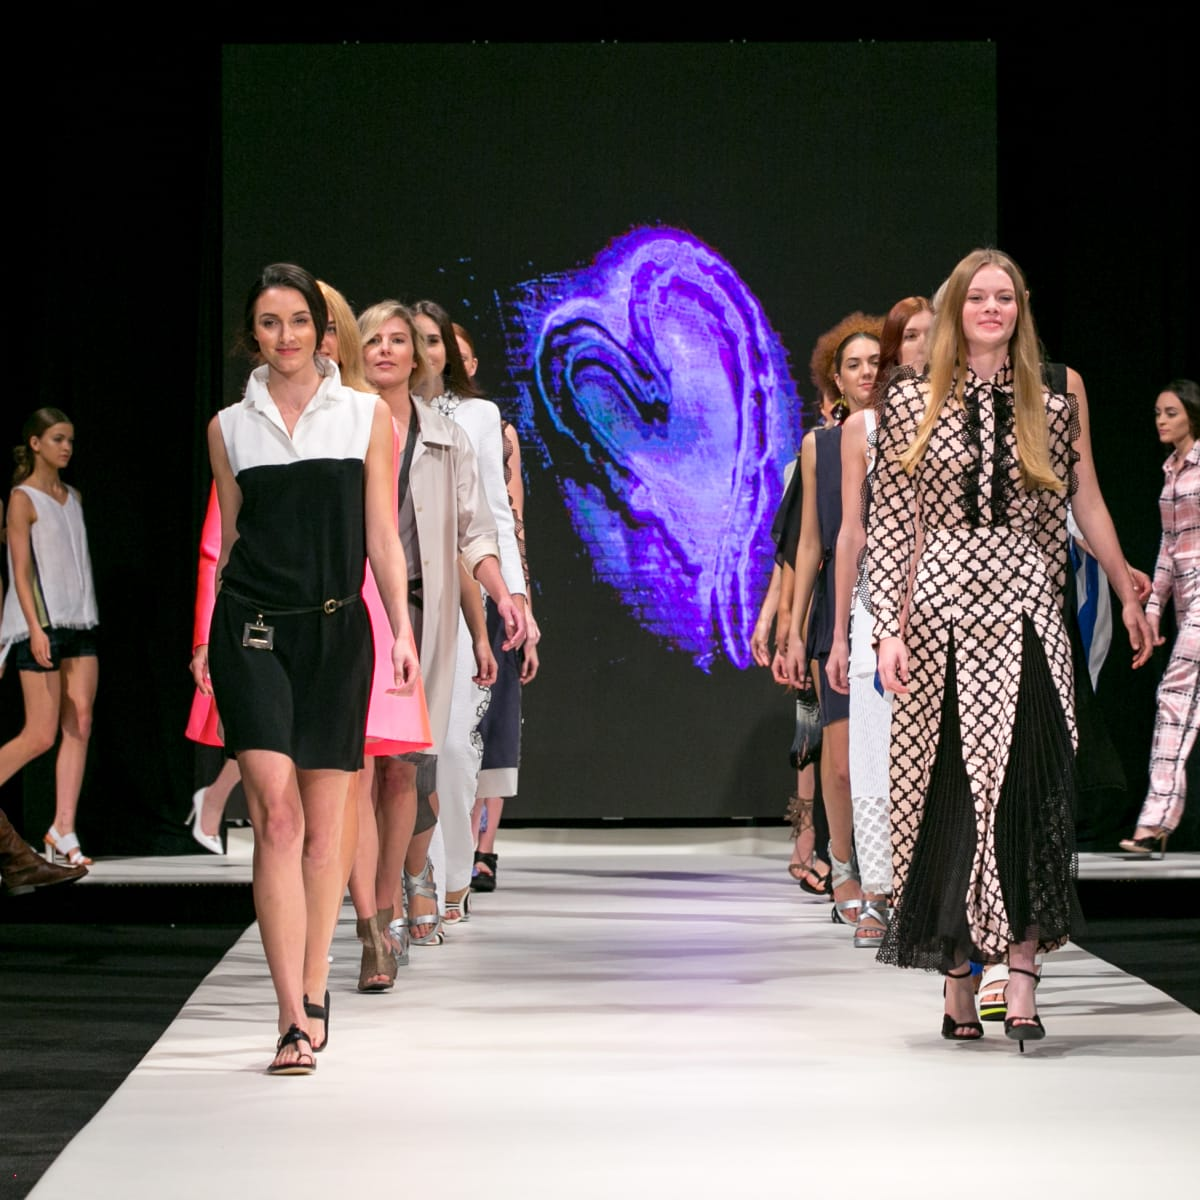 Heart of Fashion runway show final night